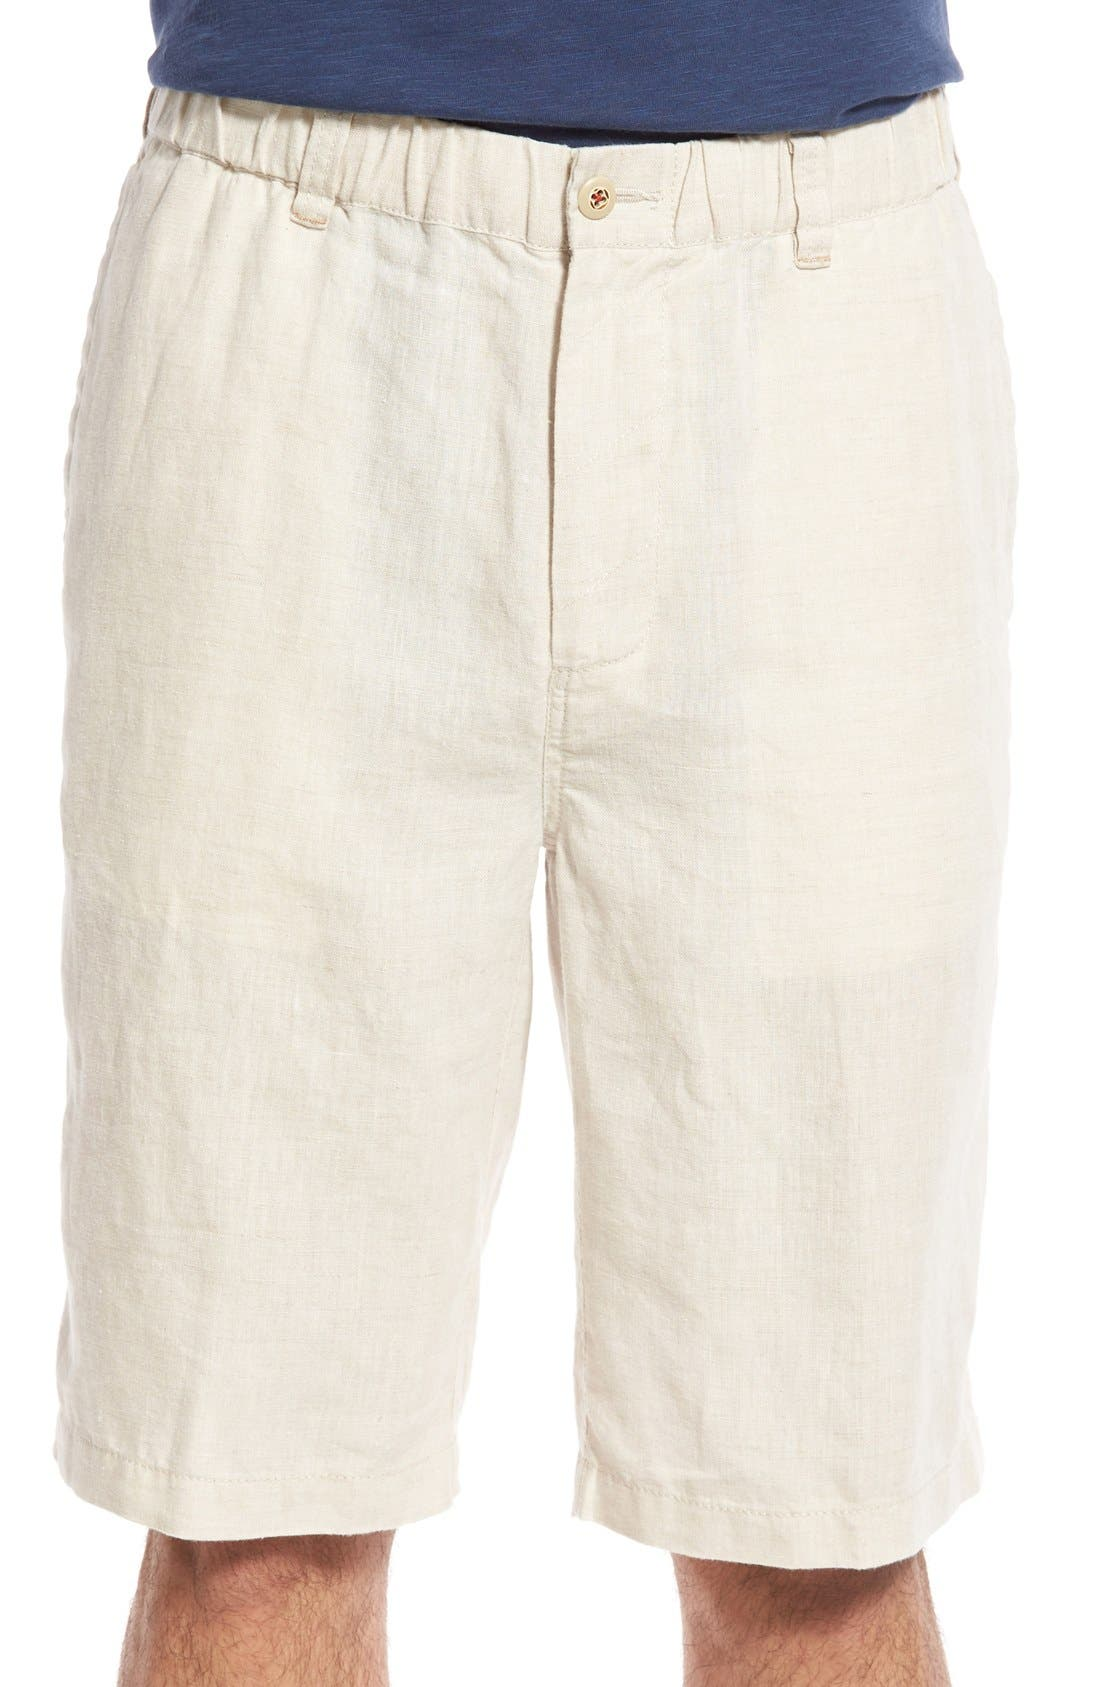 TOMMY BAHAMA 'Linen Out Loud' Linen Shorts